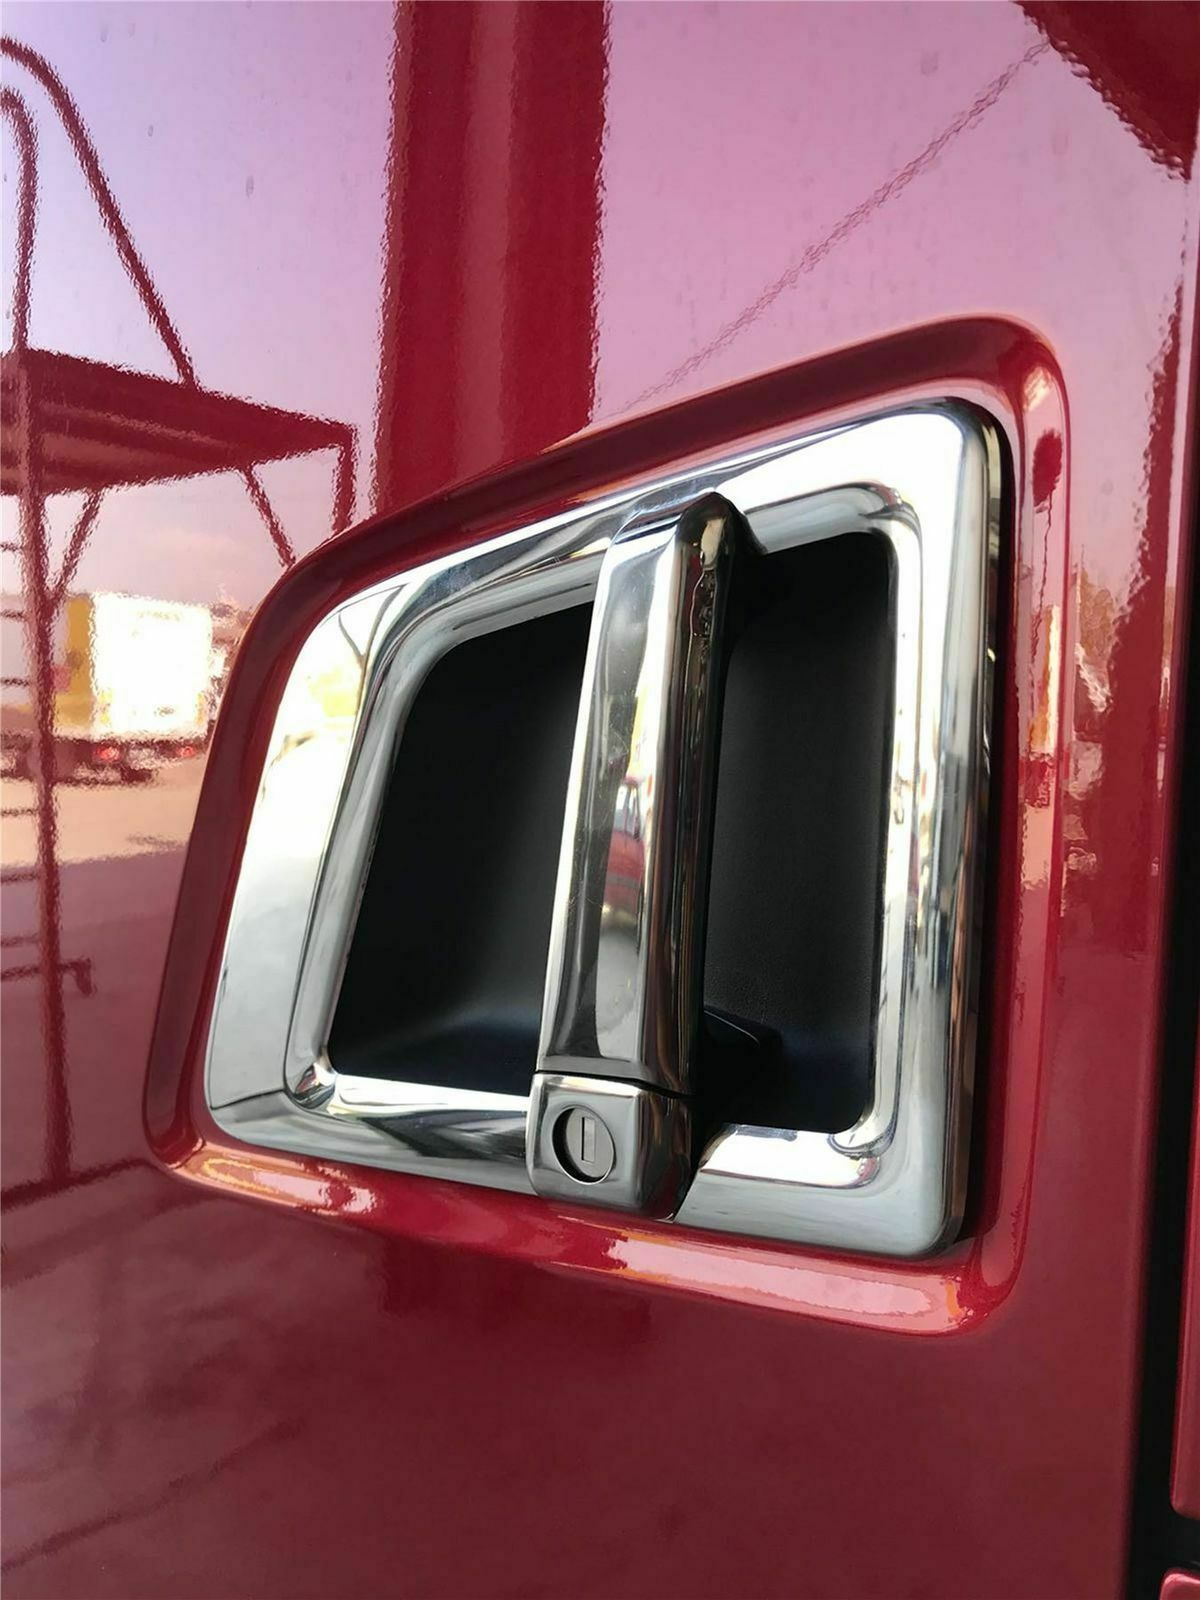 2017Up SCANIA 'S&R' SERIES 4PCS Chrome Door Handle Cover Set STAINLESS STEEL